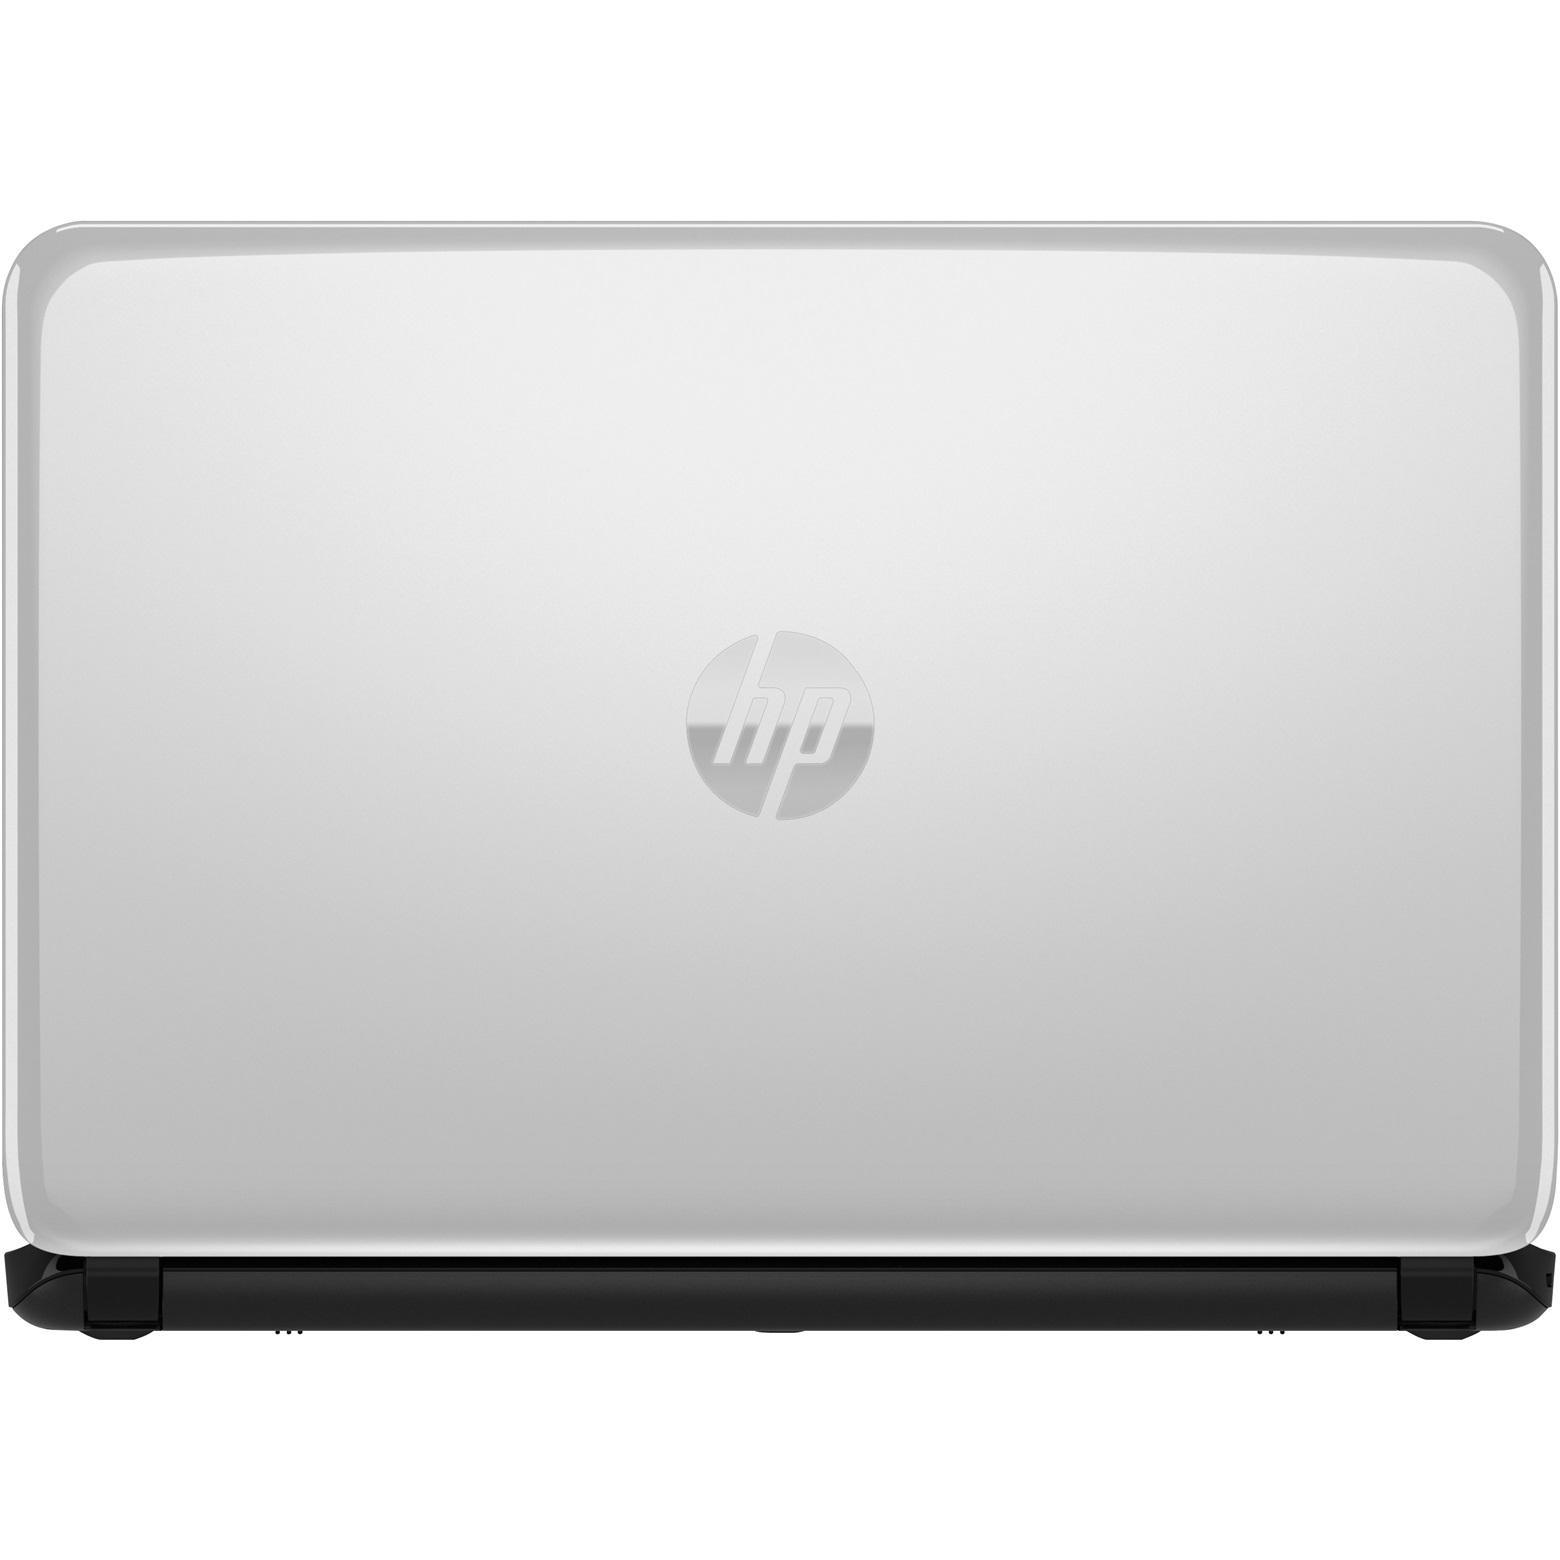 "HP 14-r207nf 14"" Core i3 1,7 GHz - HDD 1 TB - RAM 4 GB - AZERTY"